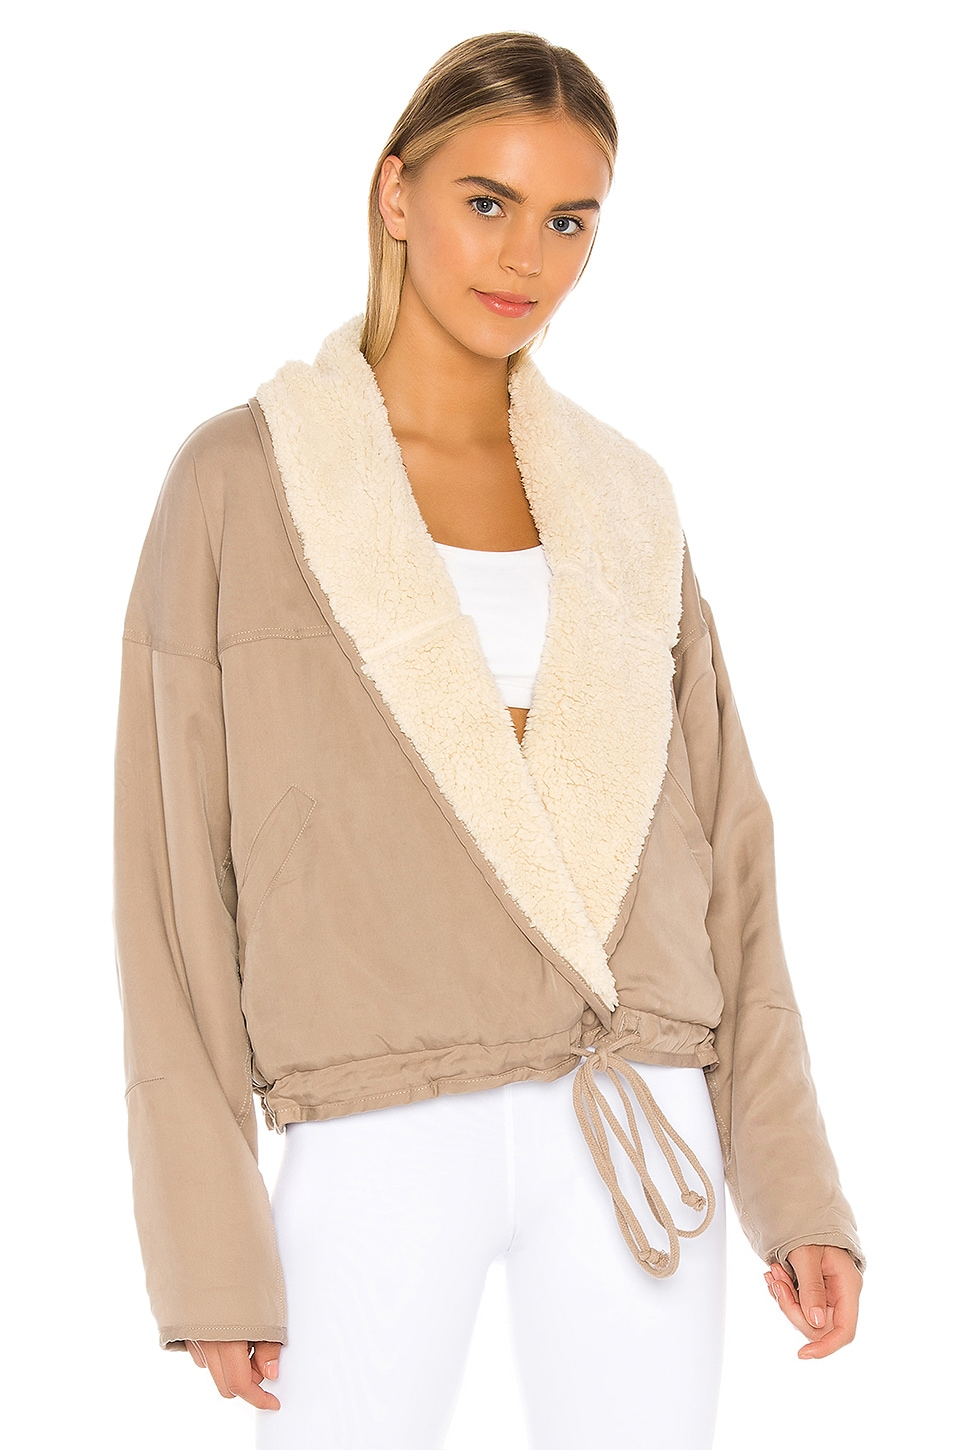 Free People X FP Movement Mix It Up Reversible Jacket in Neutral